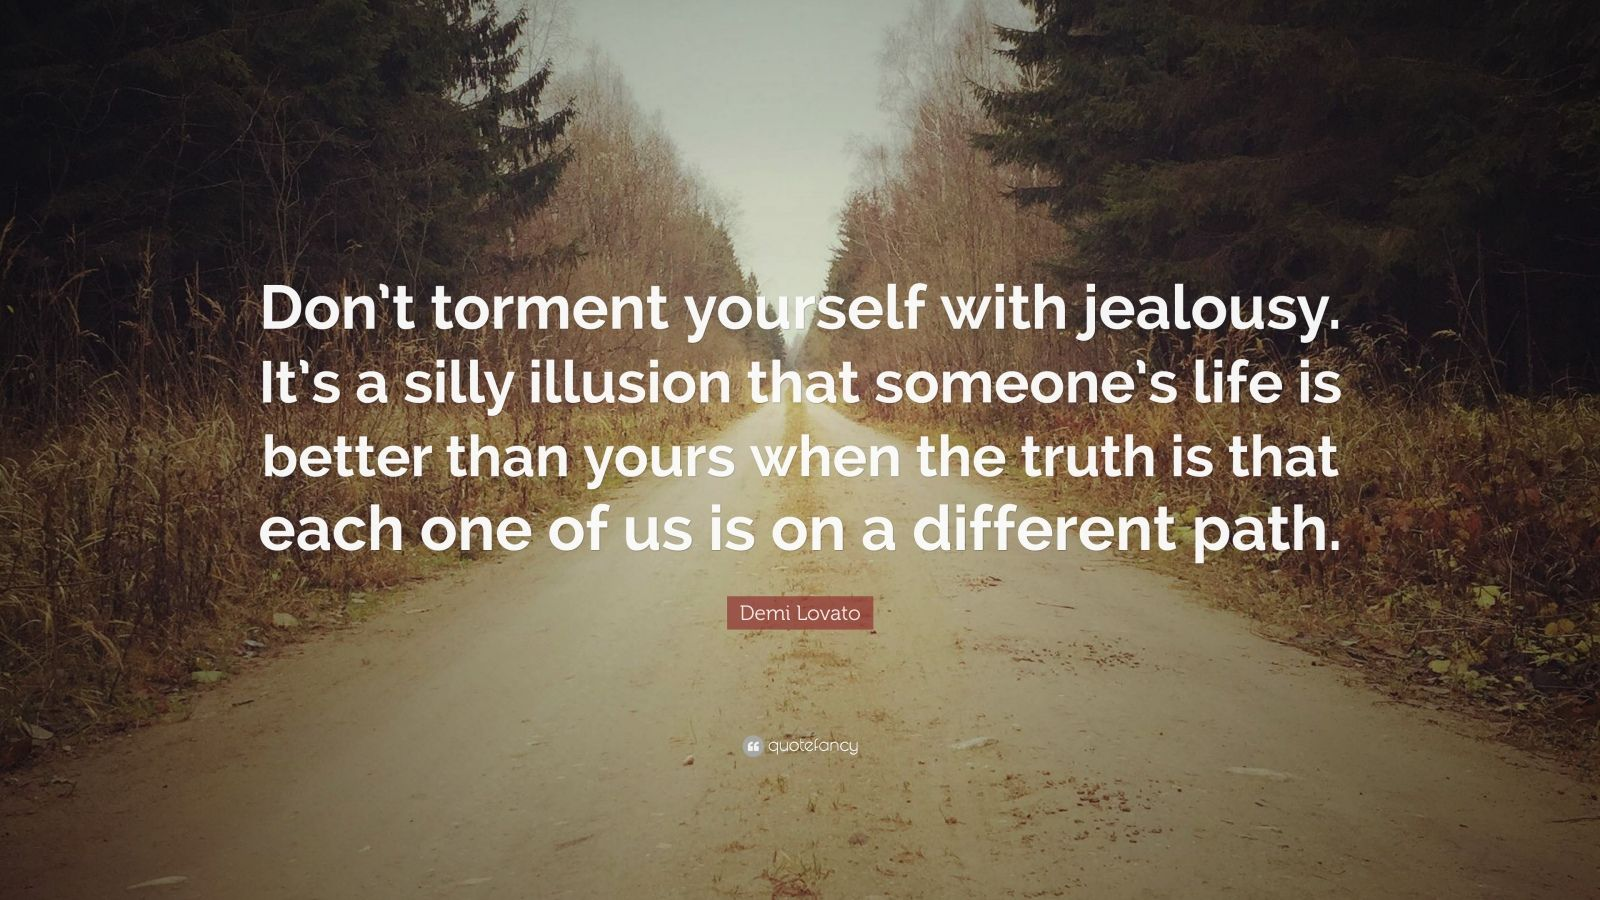 "Demi Lovato Quote: ""Don't torment yourself with jealousy. It's a silly illusion that someone's life is better than yours when the truth is that each one of us is on a different path."""